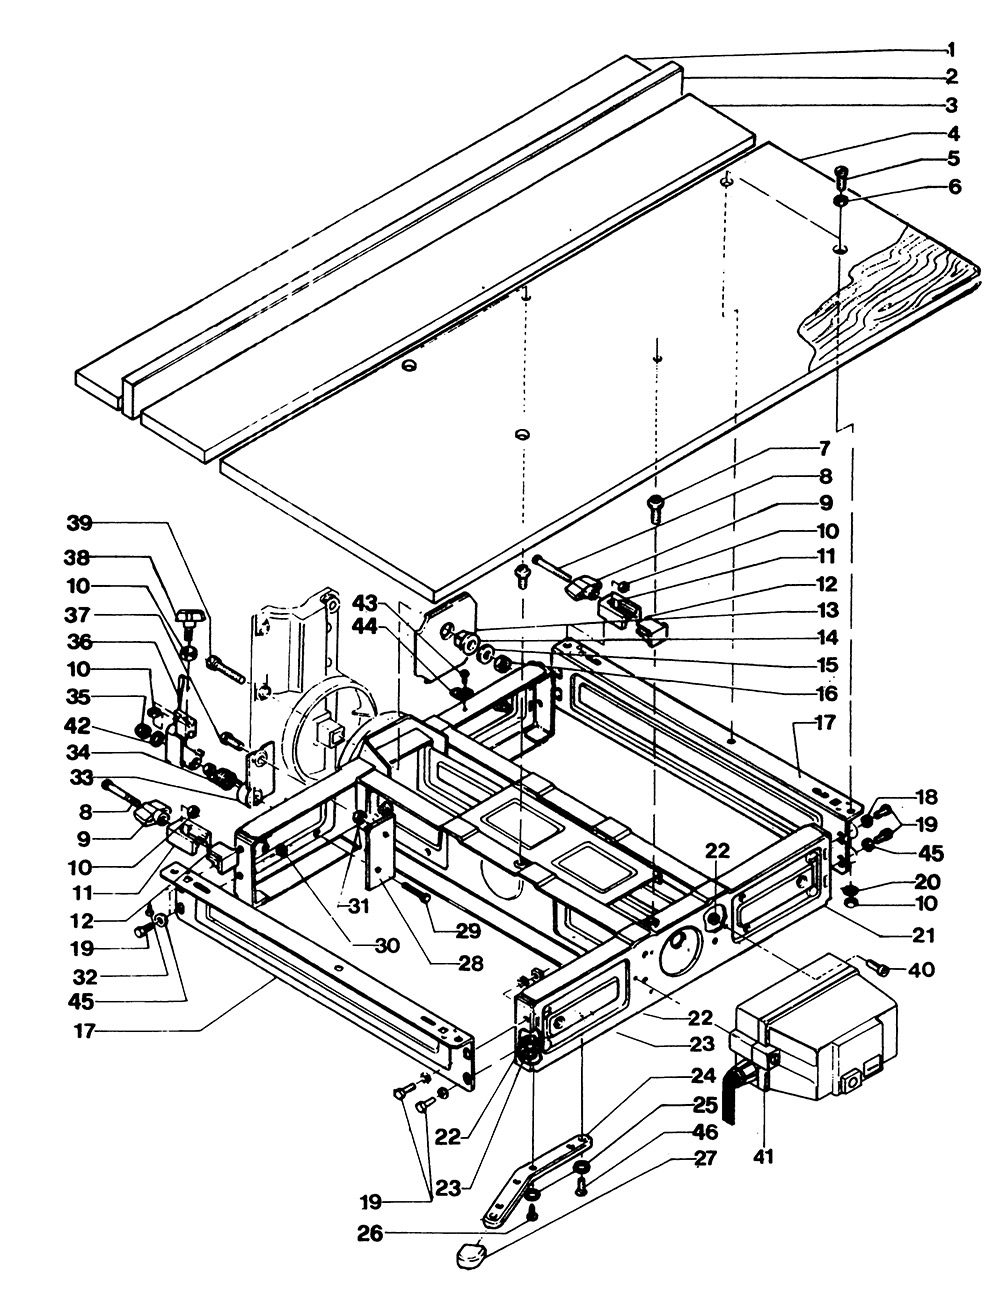 dewalt radial arm saw parts diagram dewalt dw1201----d type 1 radial arm saw spare parts ... #11